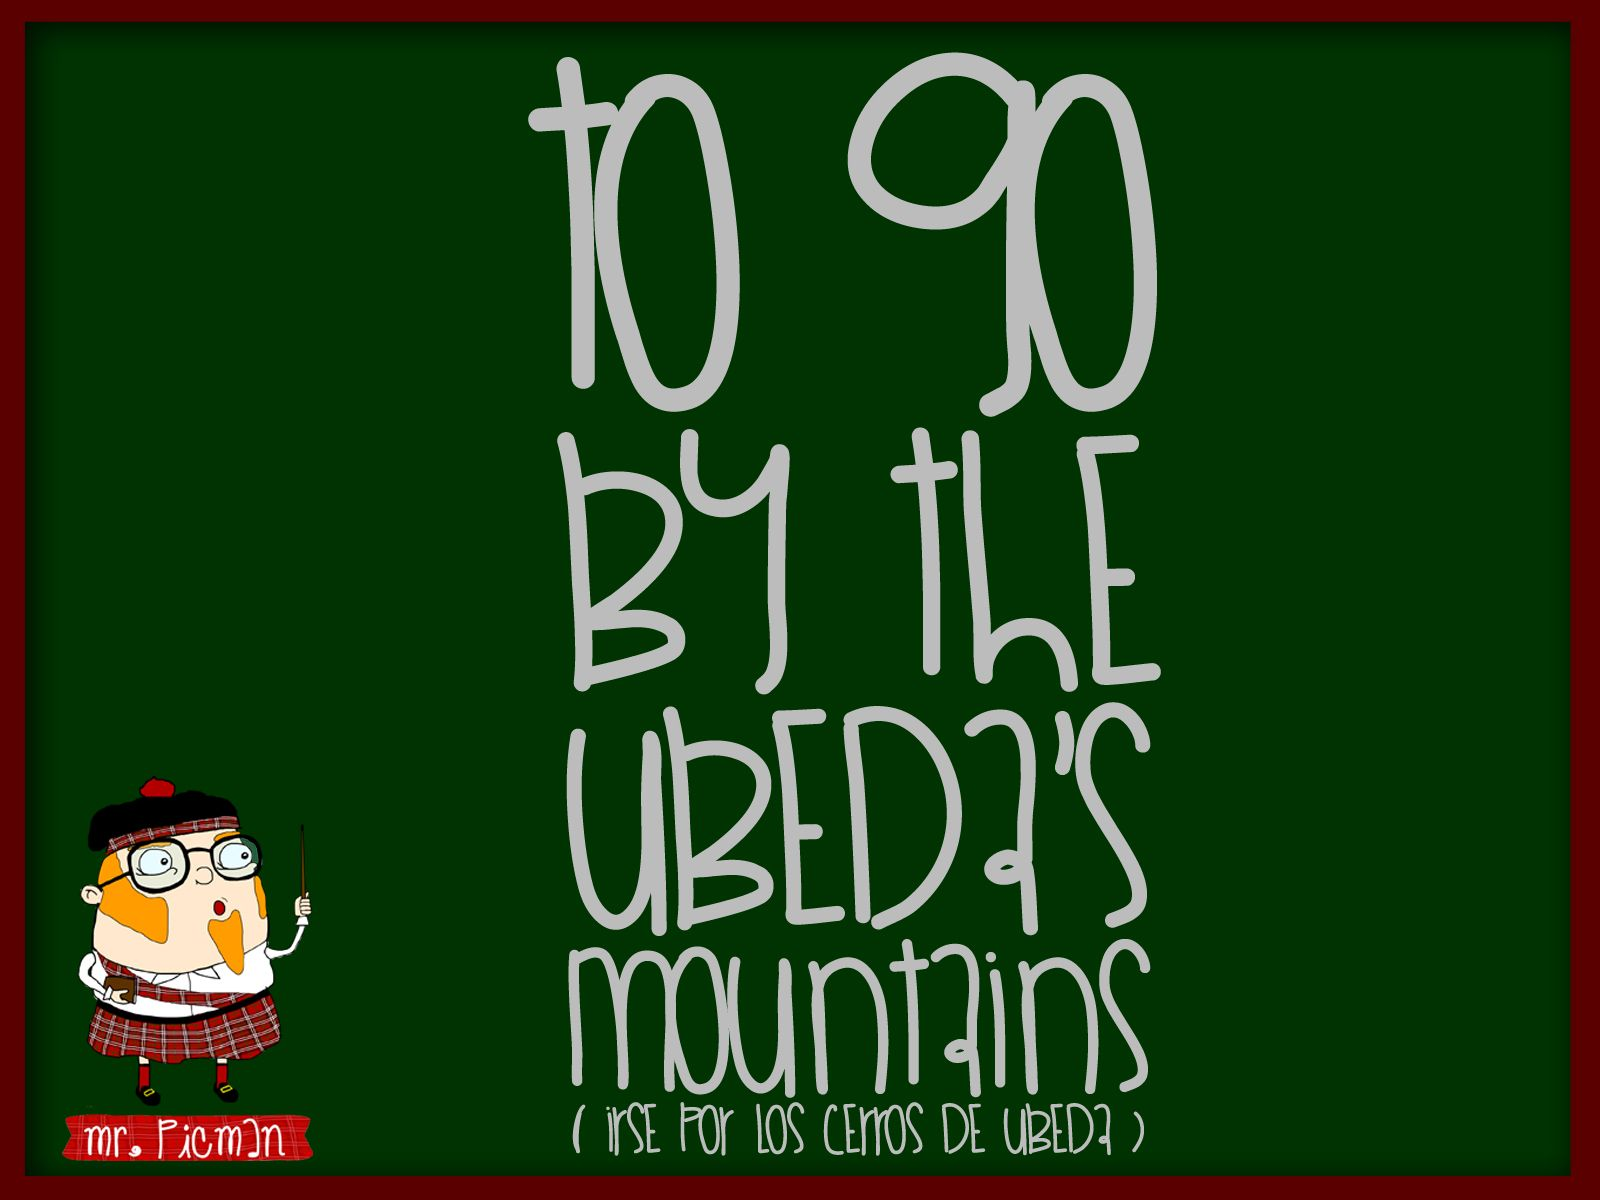 Aprende inglés con el profesor Mr. Picman: To go by the Ubeda's mountains (Irse por los cerros de Úbeda)